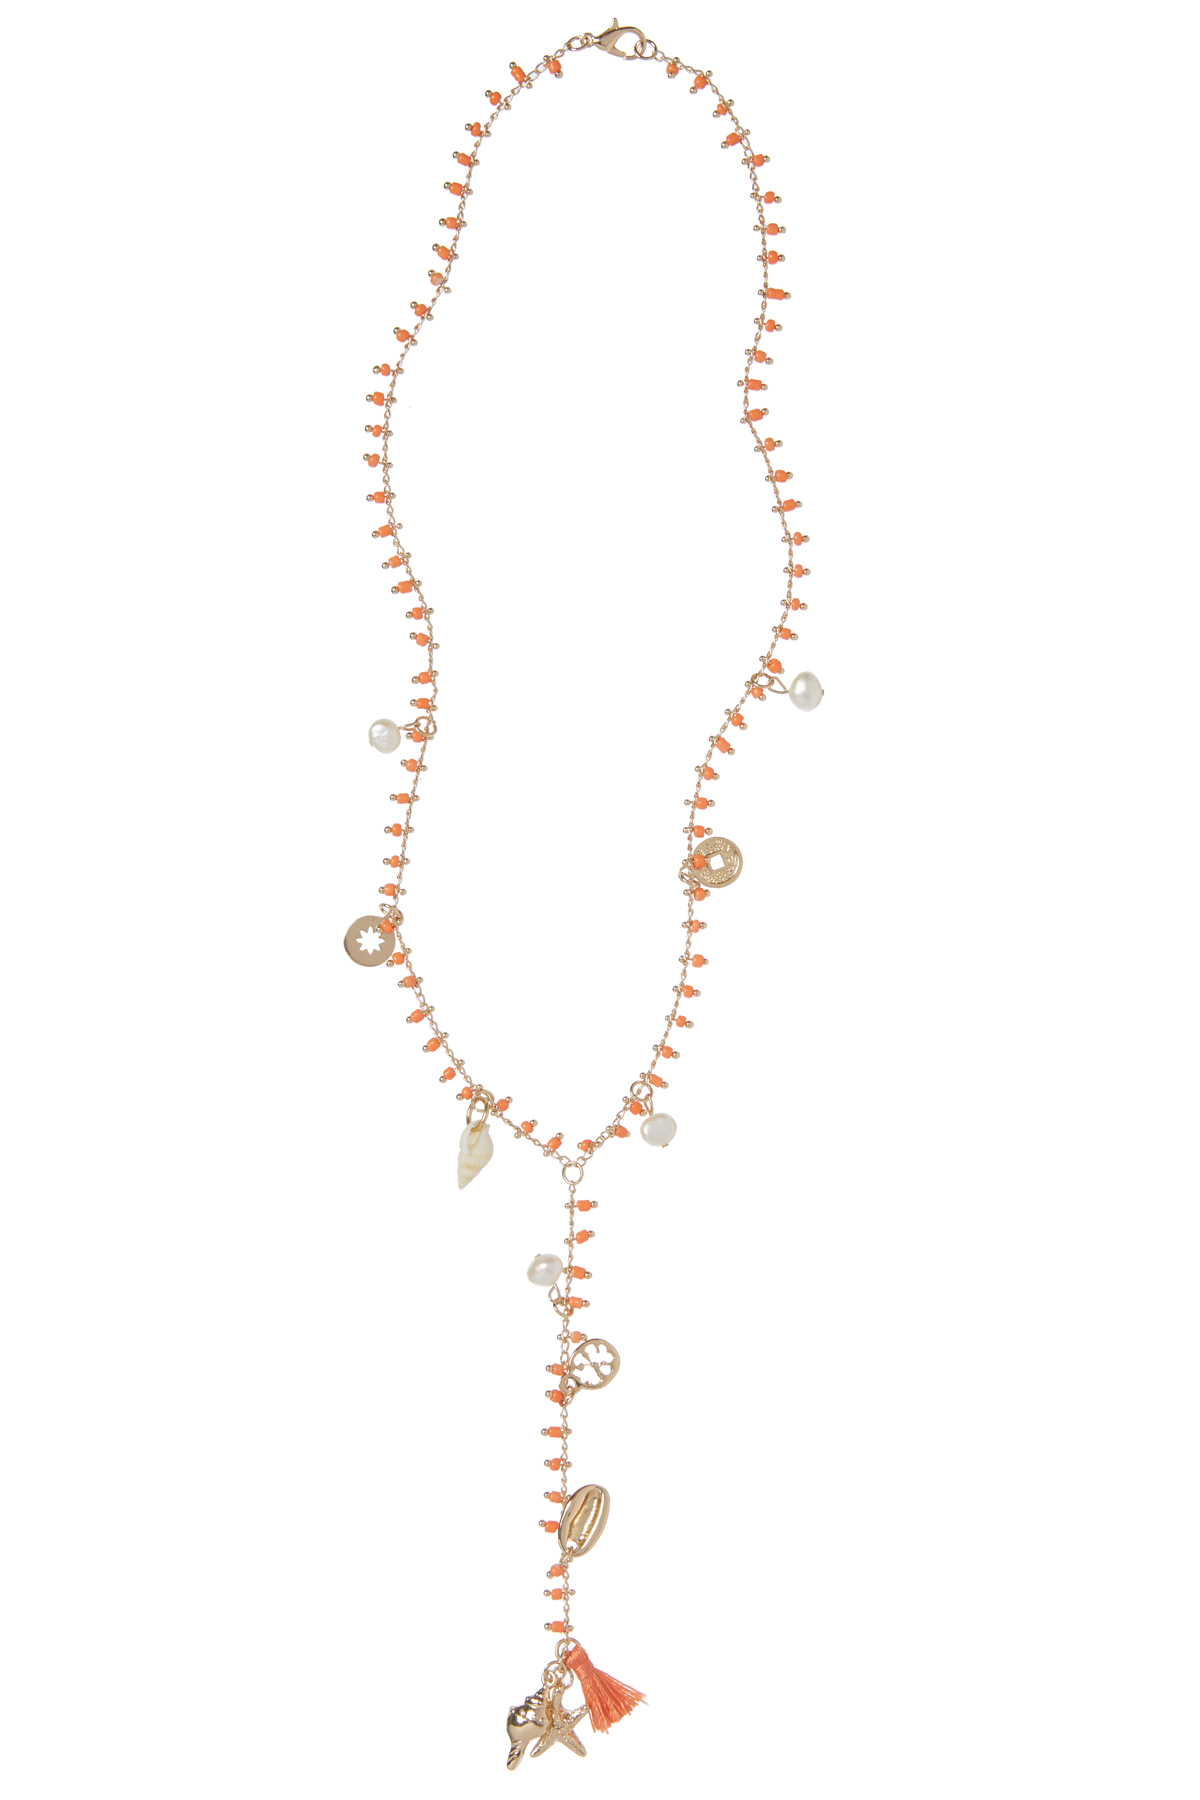 Shell and Tassel Necklace - Coral Gold 2